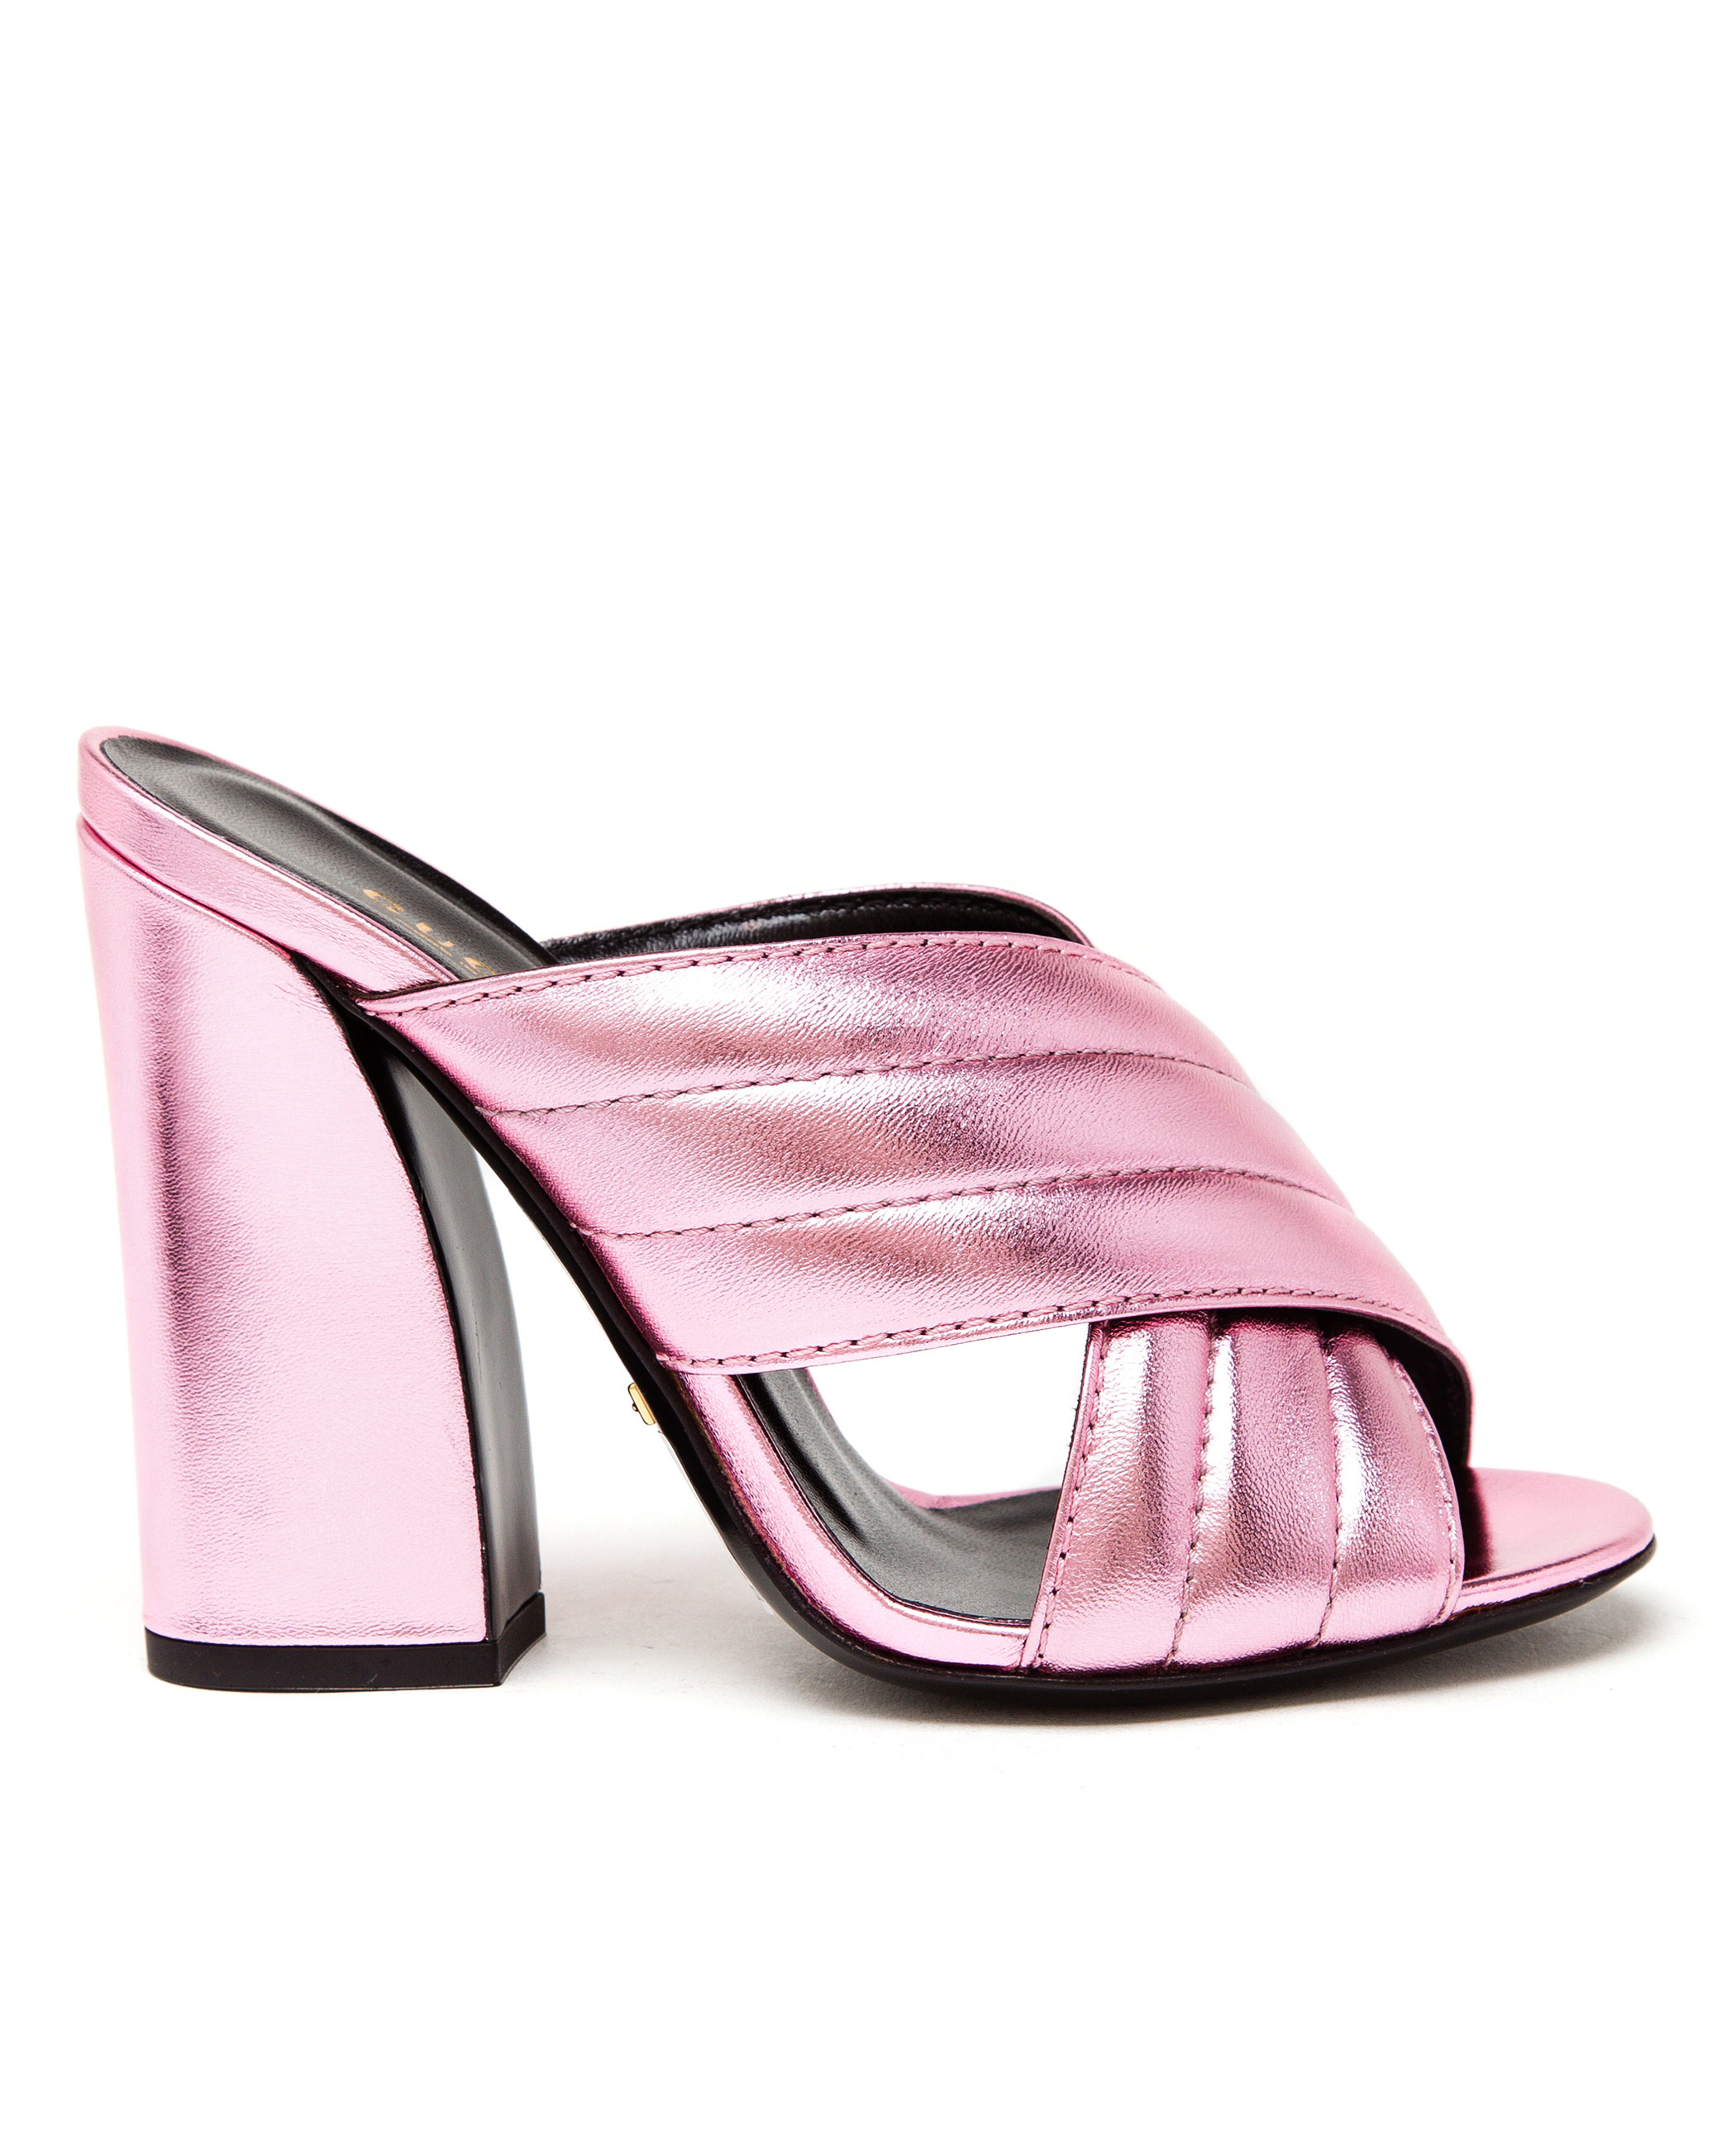 a4ebc4ff4bb00 Lyst - Gucci Padded Metallic Leather Mules in Pink